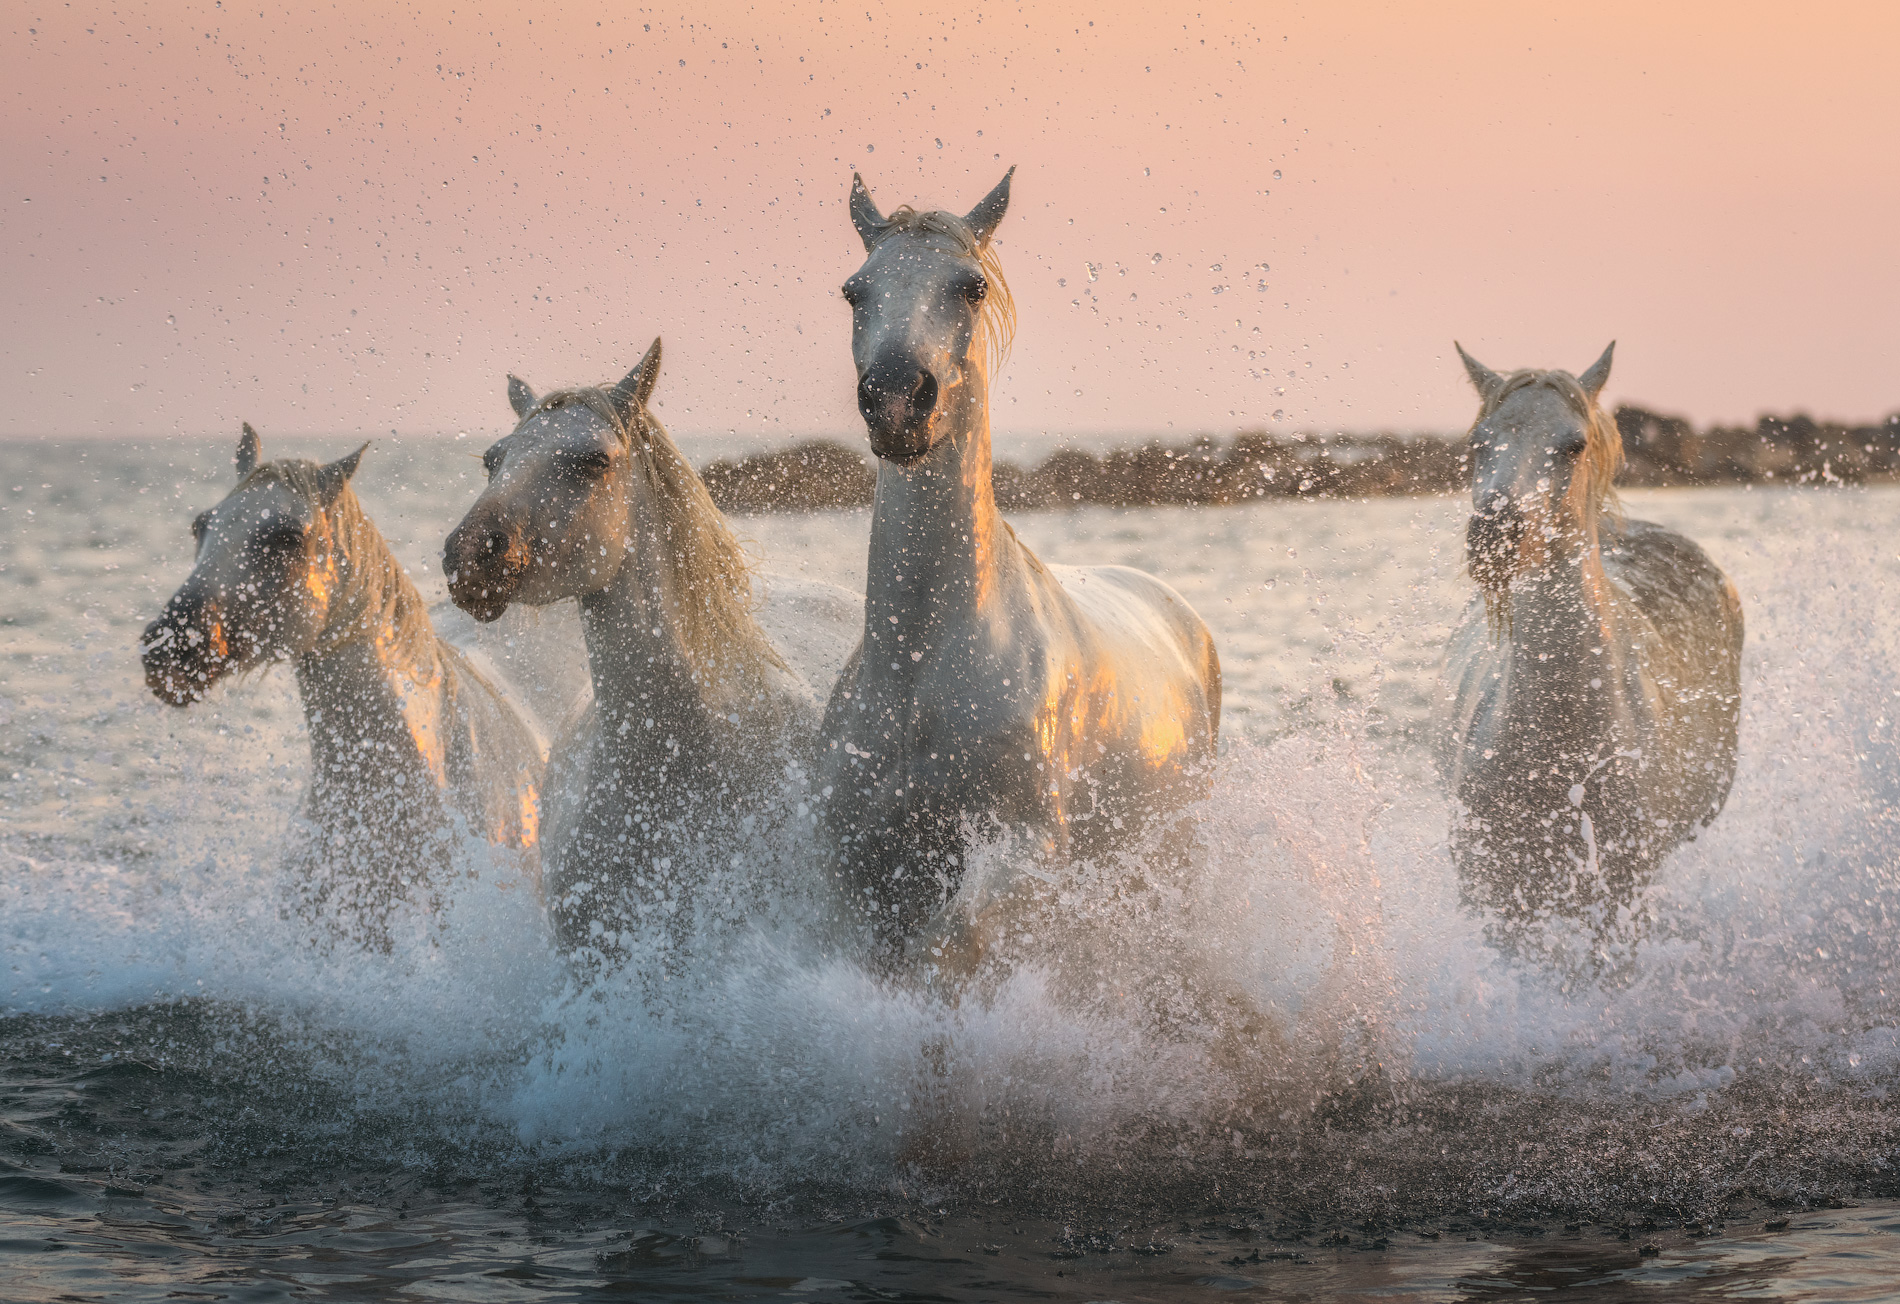 White Horses of Camargue | 5 Day Photo Tour in France - day 3